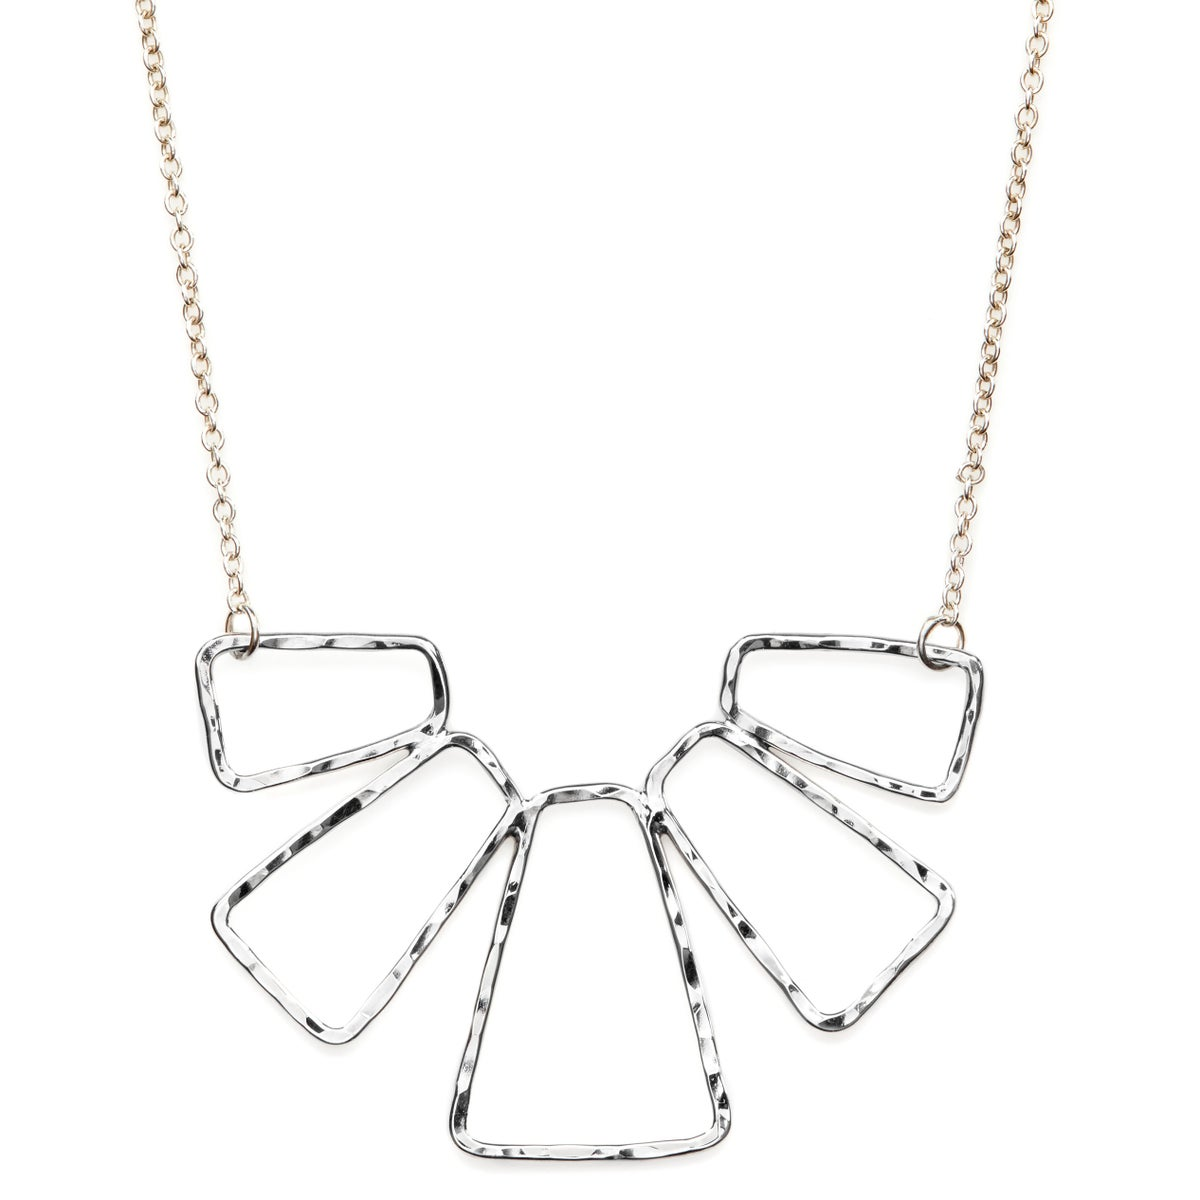 Image of Sunrays Necklace